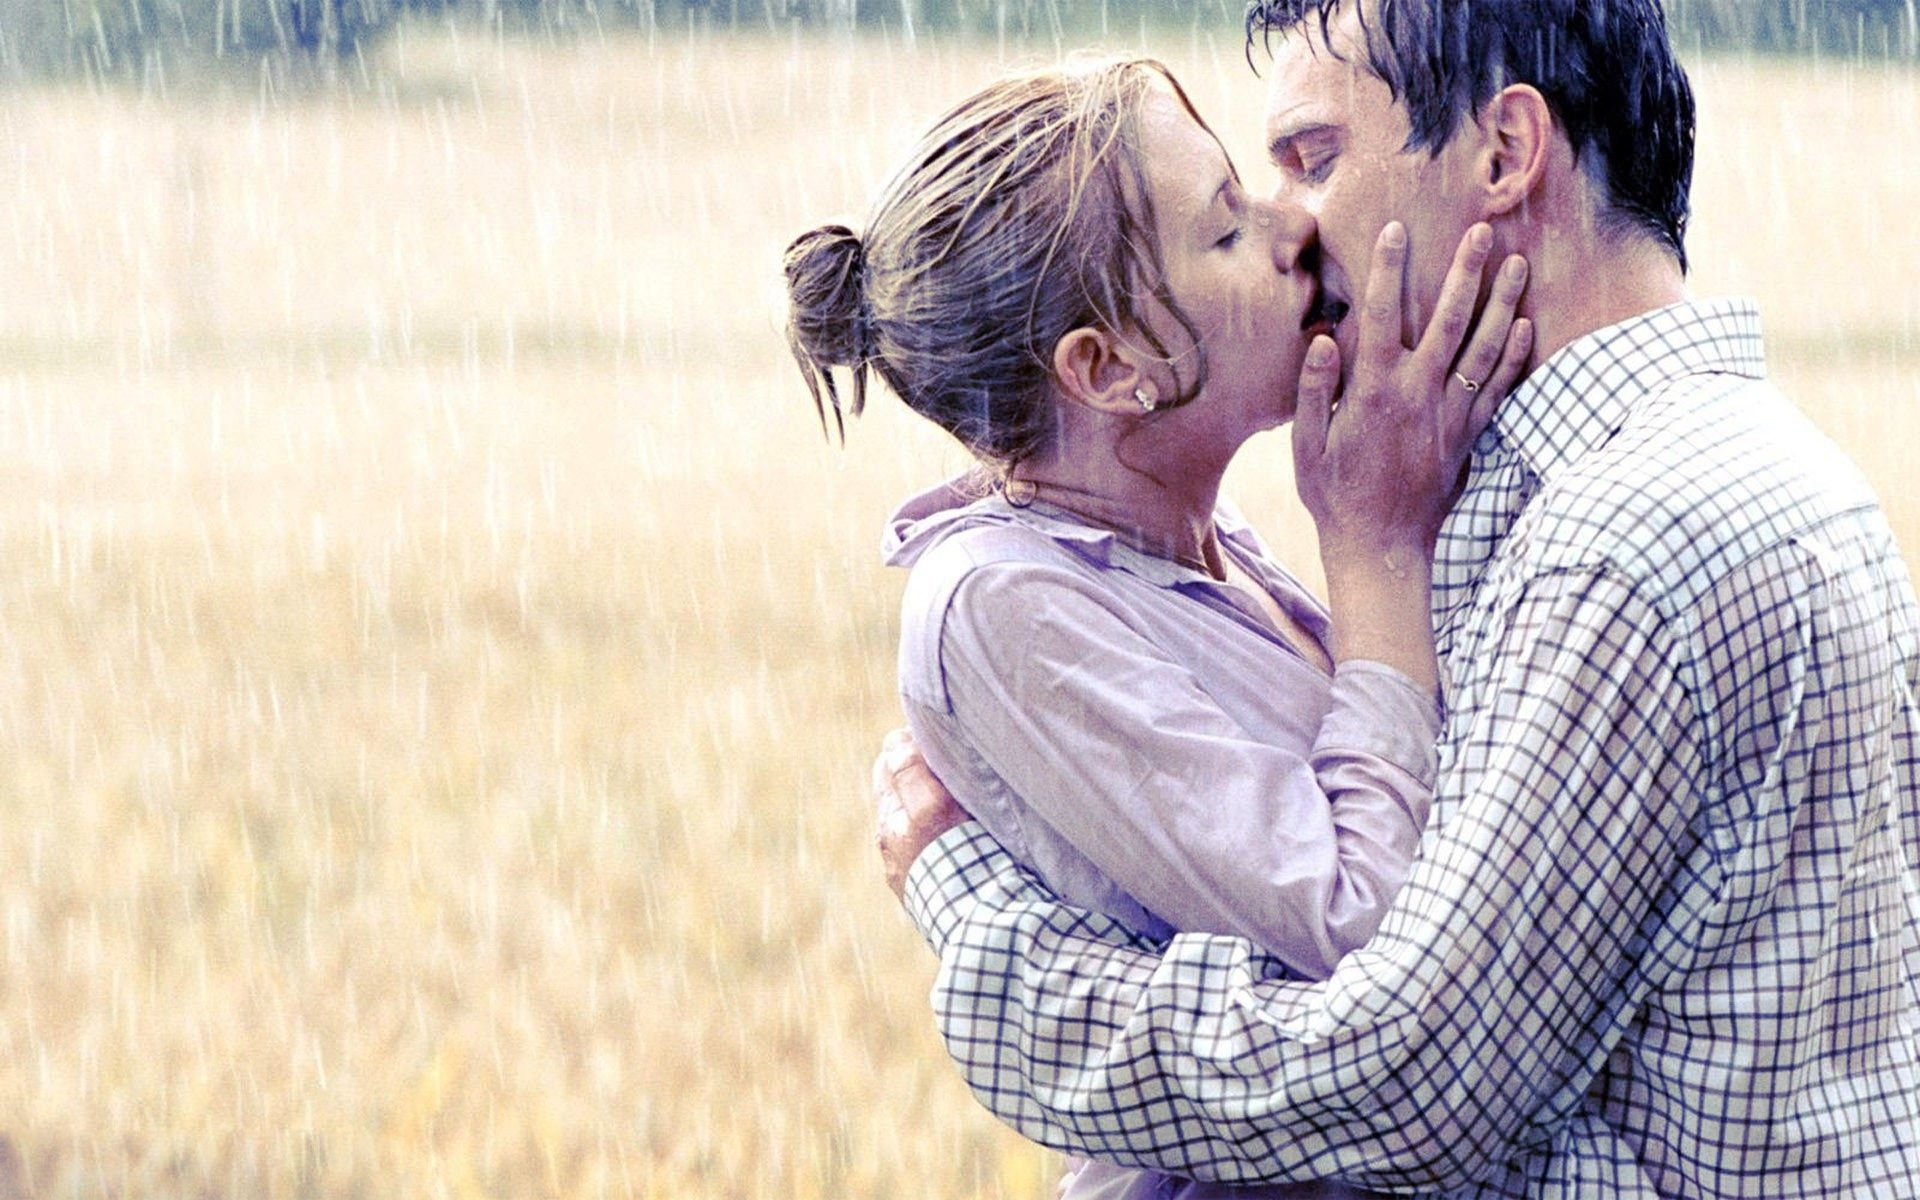 hot kiss in rain images